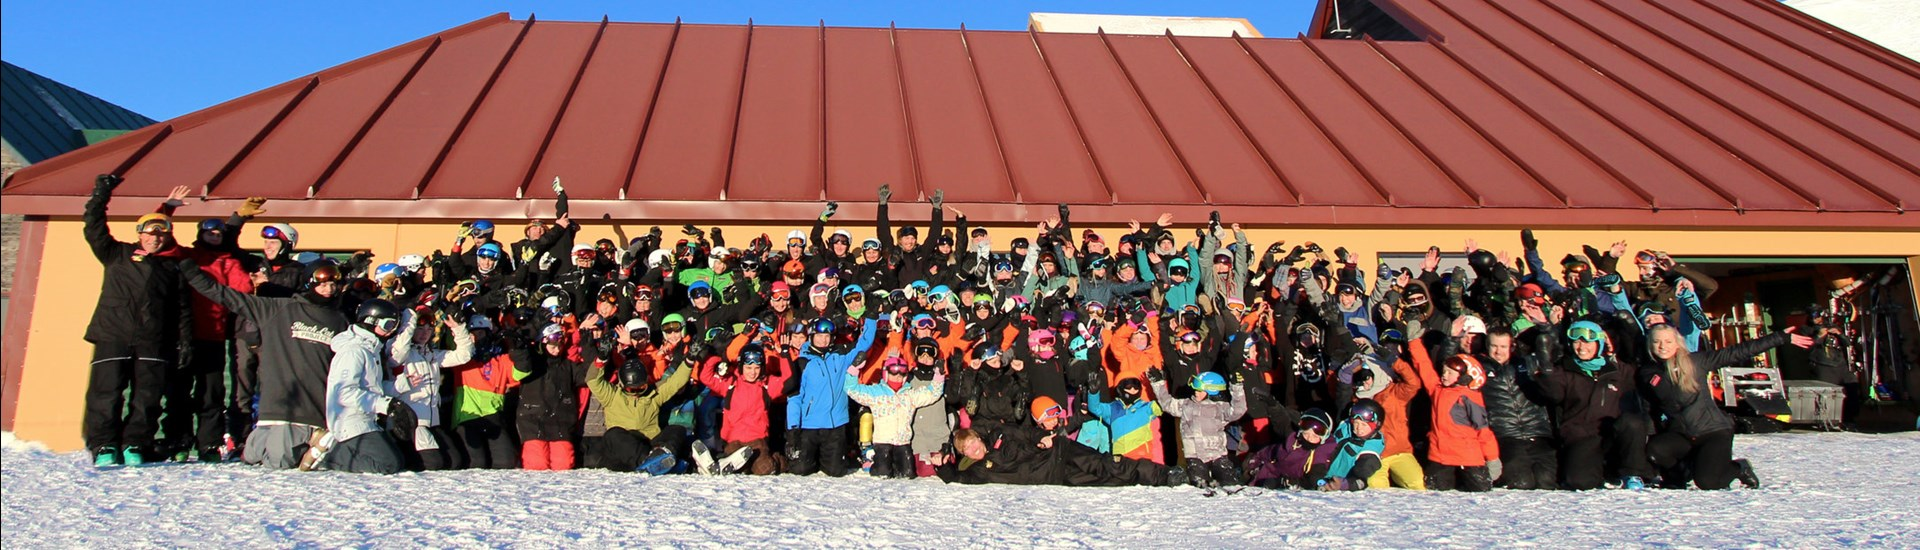 Cardrona park squad cardrona nz queenstown ski skiing in queenstown